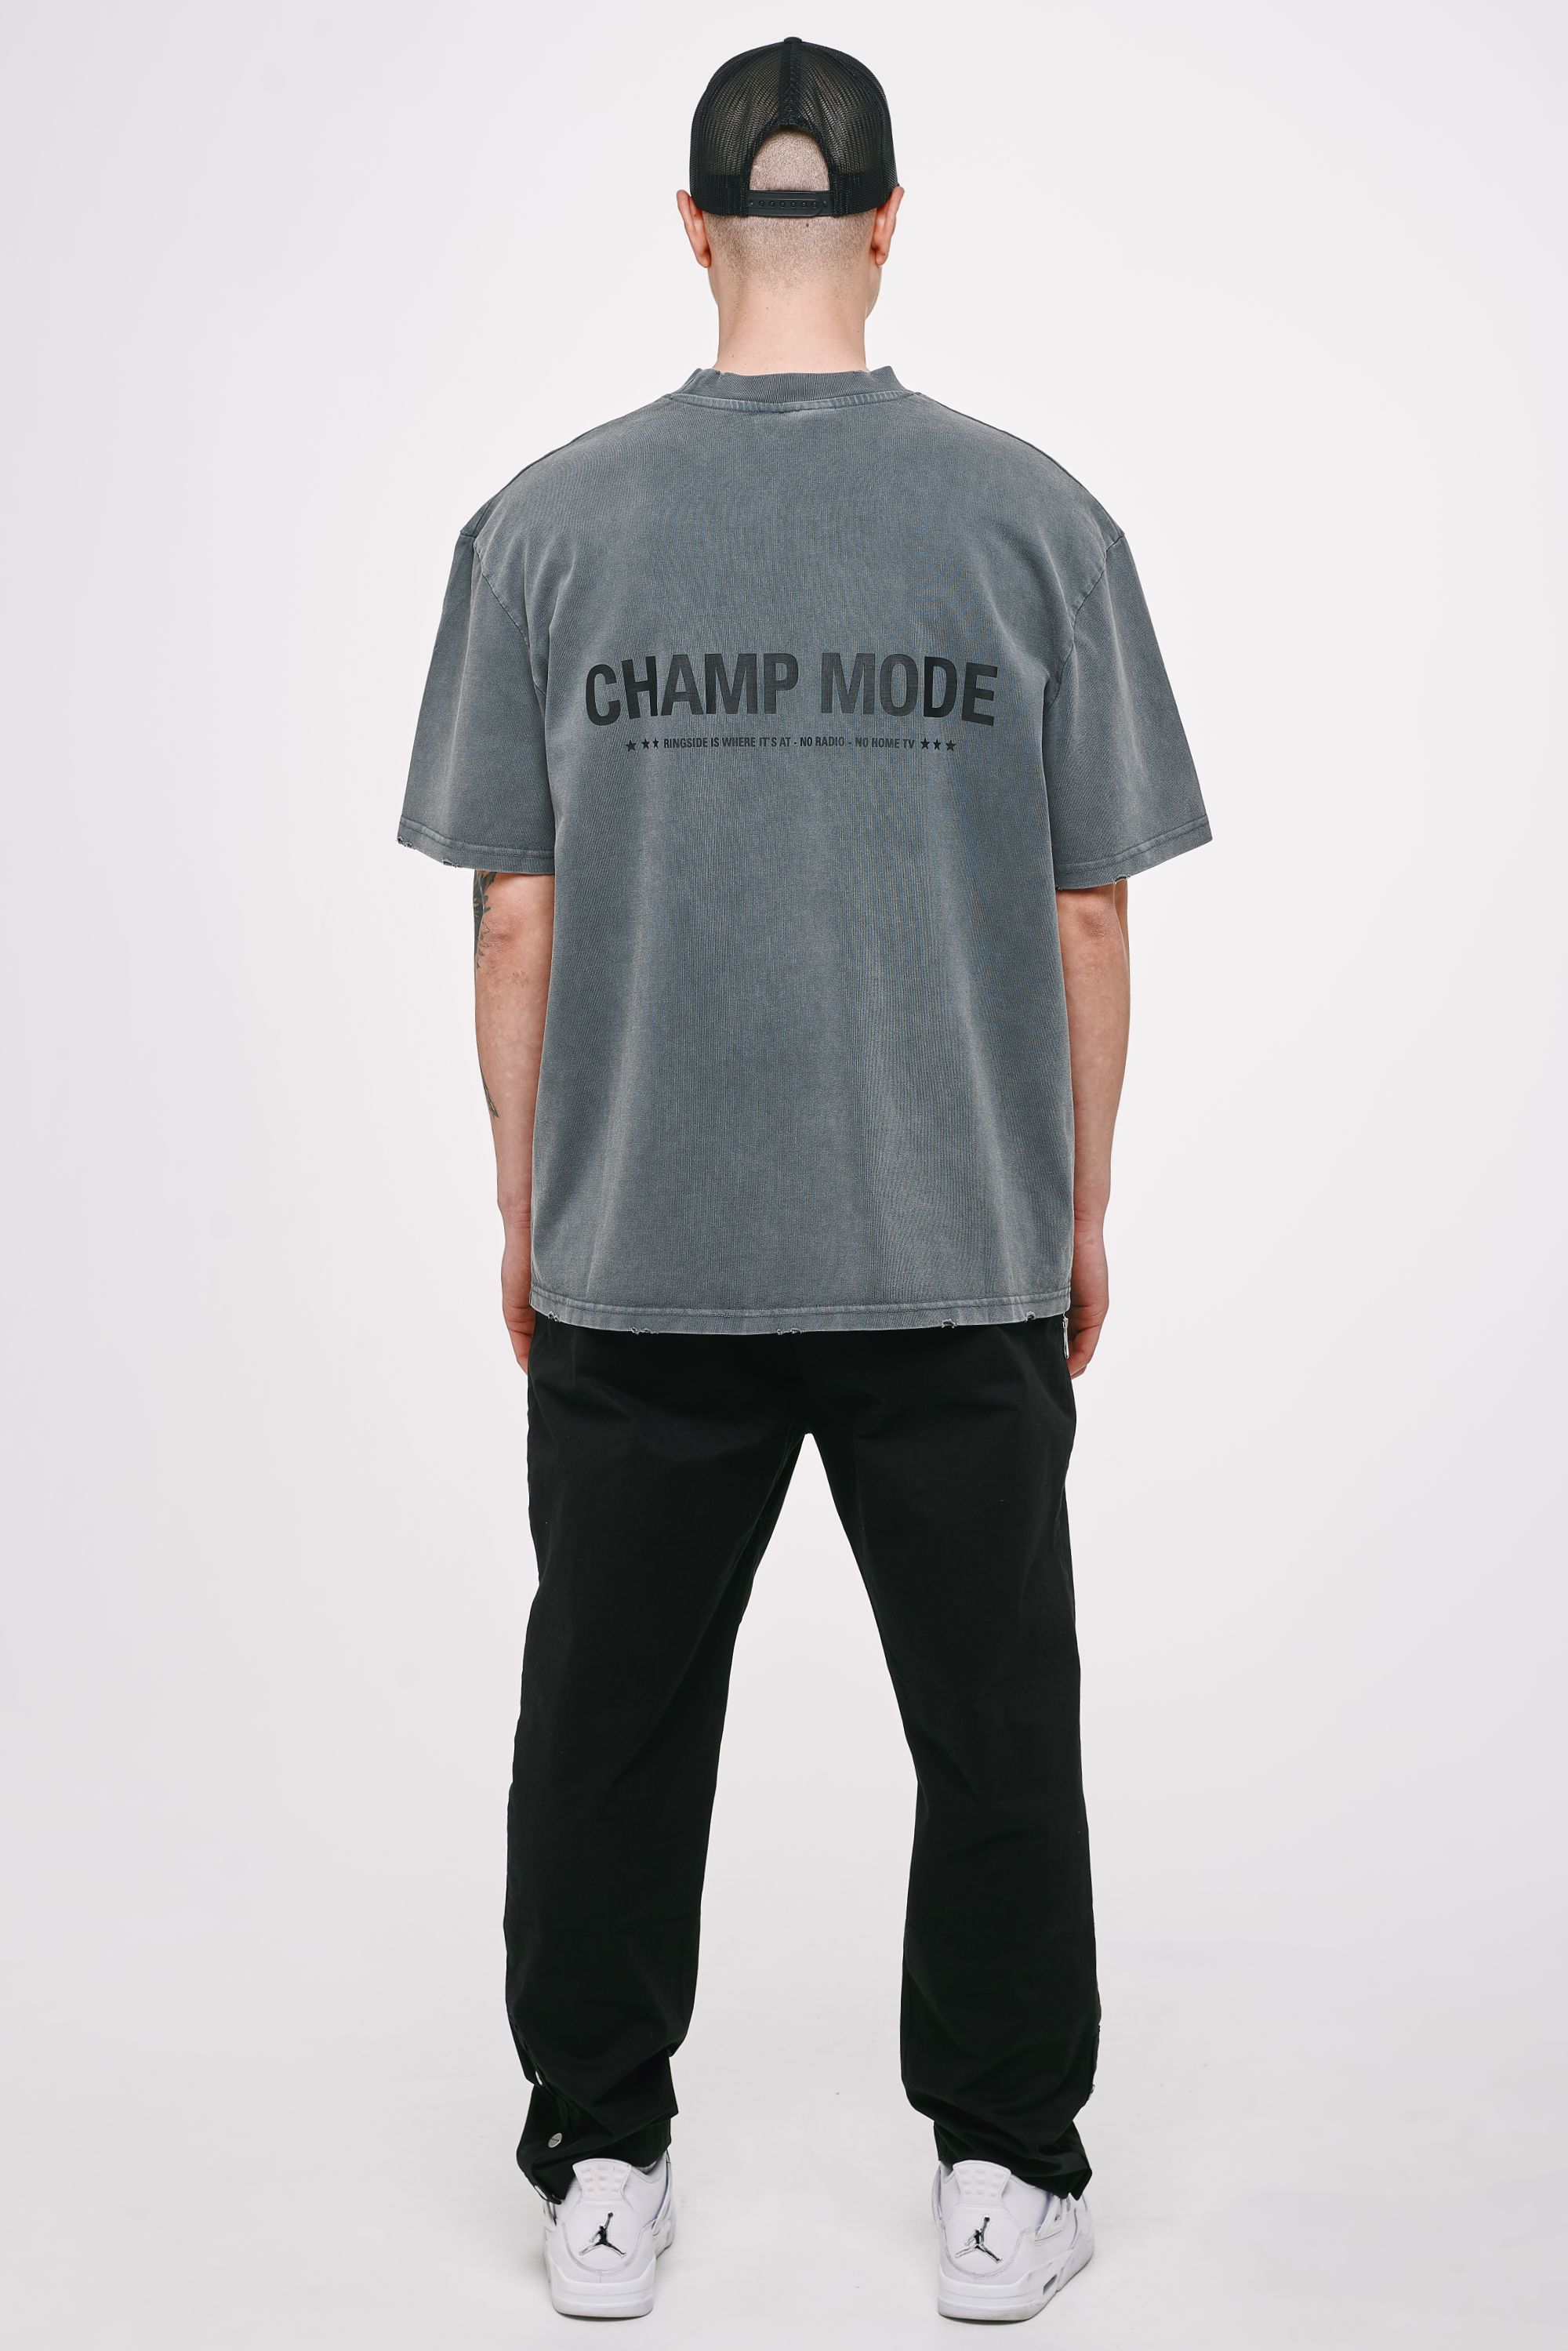 Mike Oversized Tee Vintage Grey T-SHIRT Heavyweight Champions